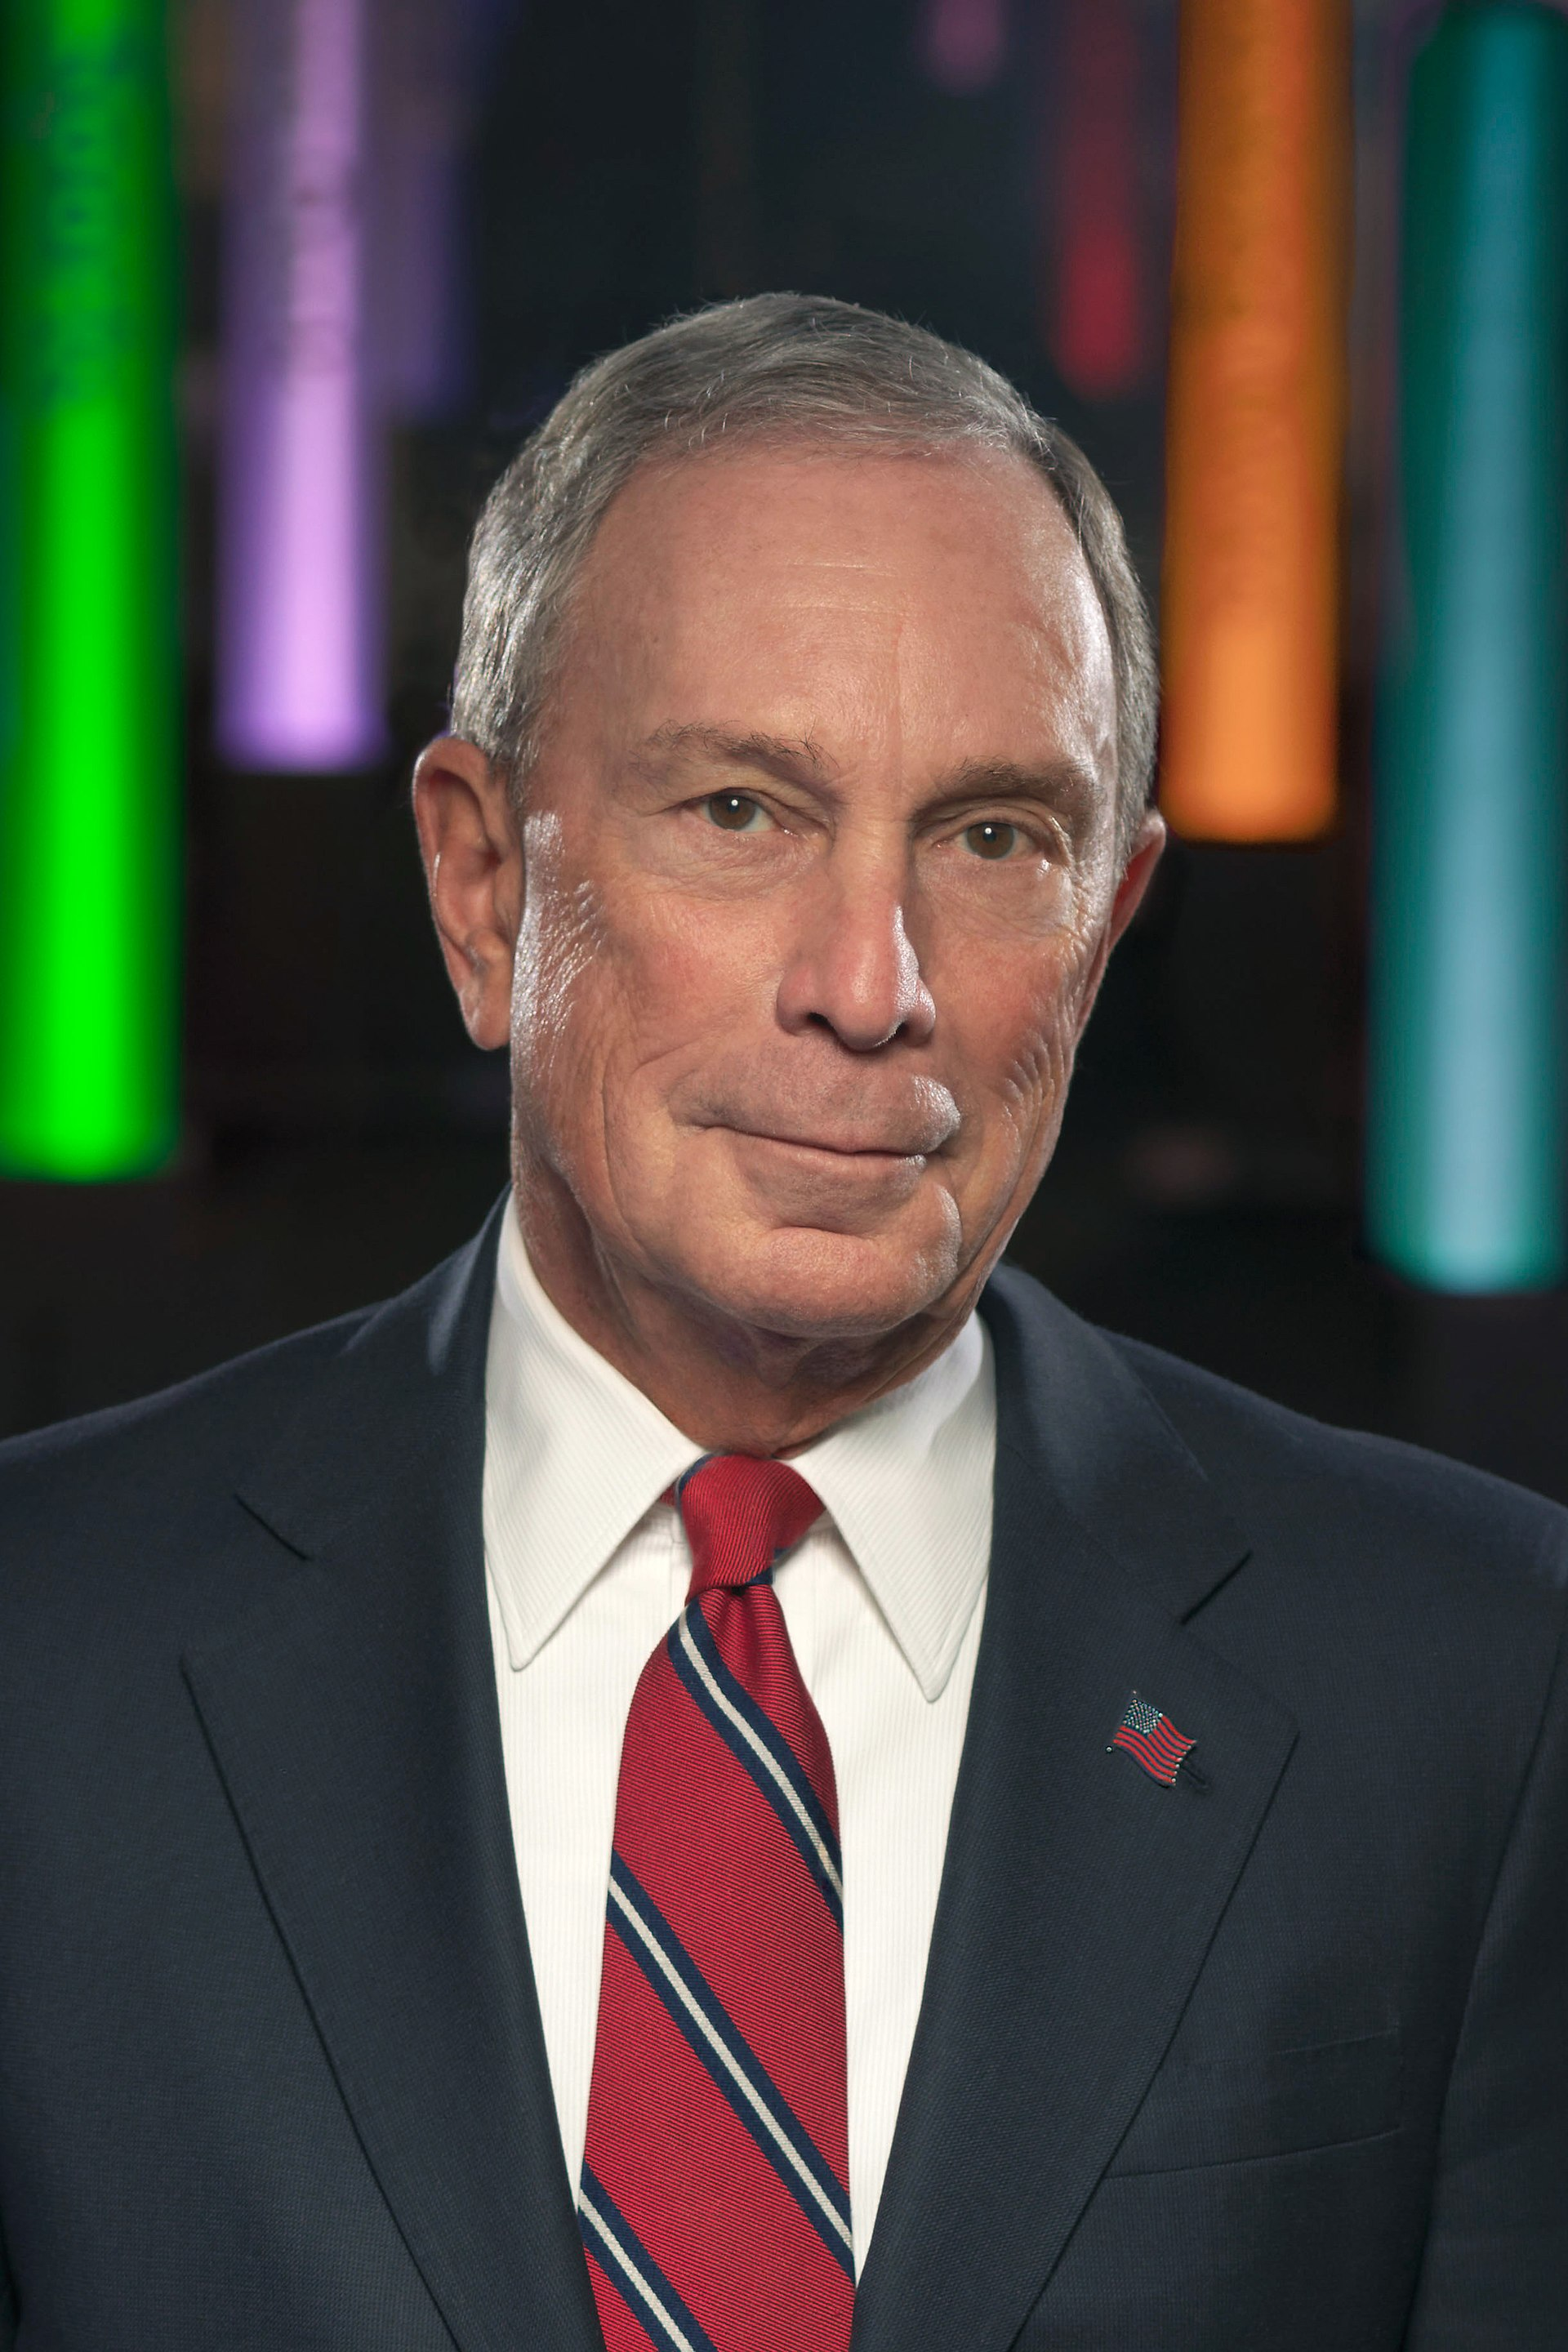 michael bloomberg - photo #3